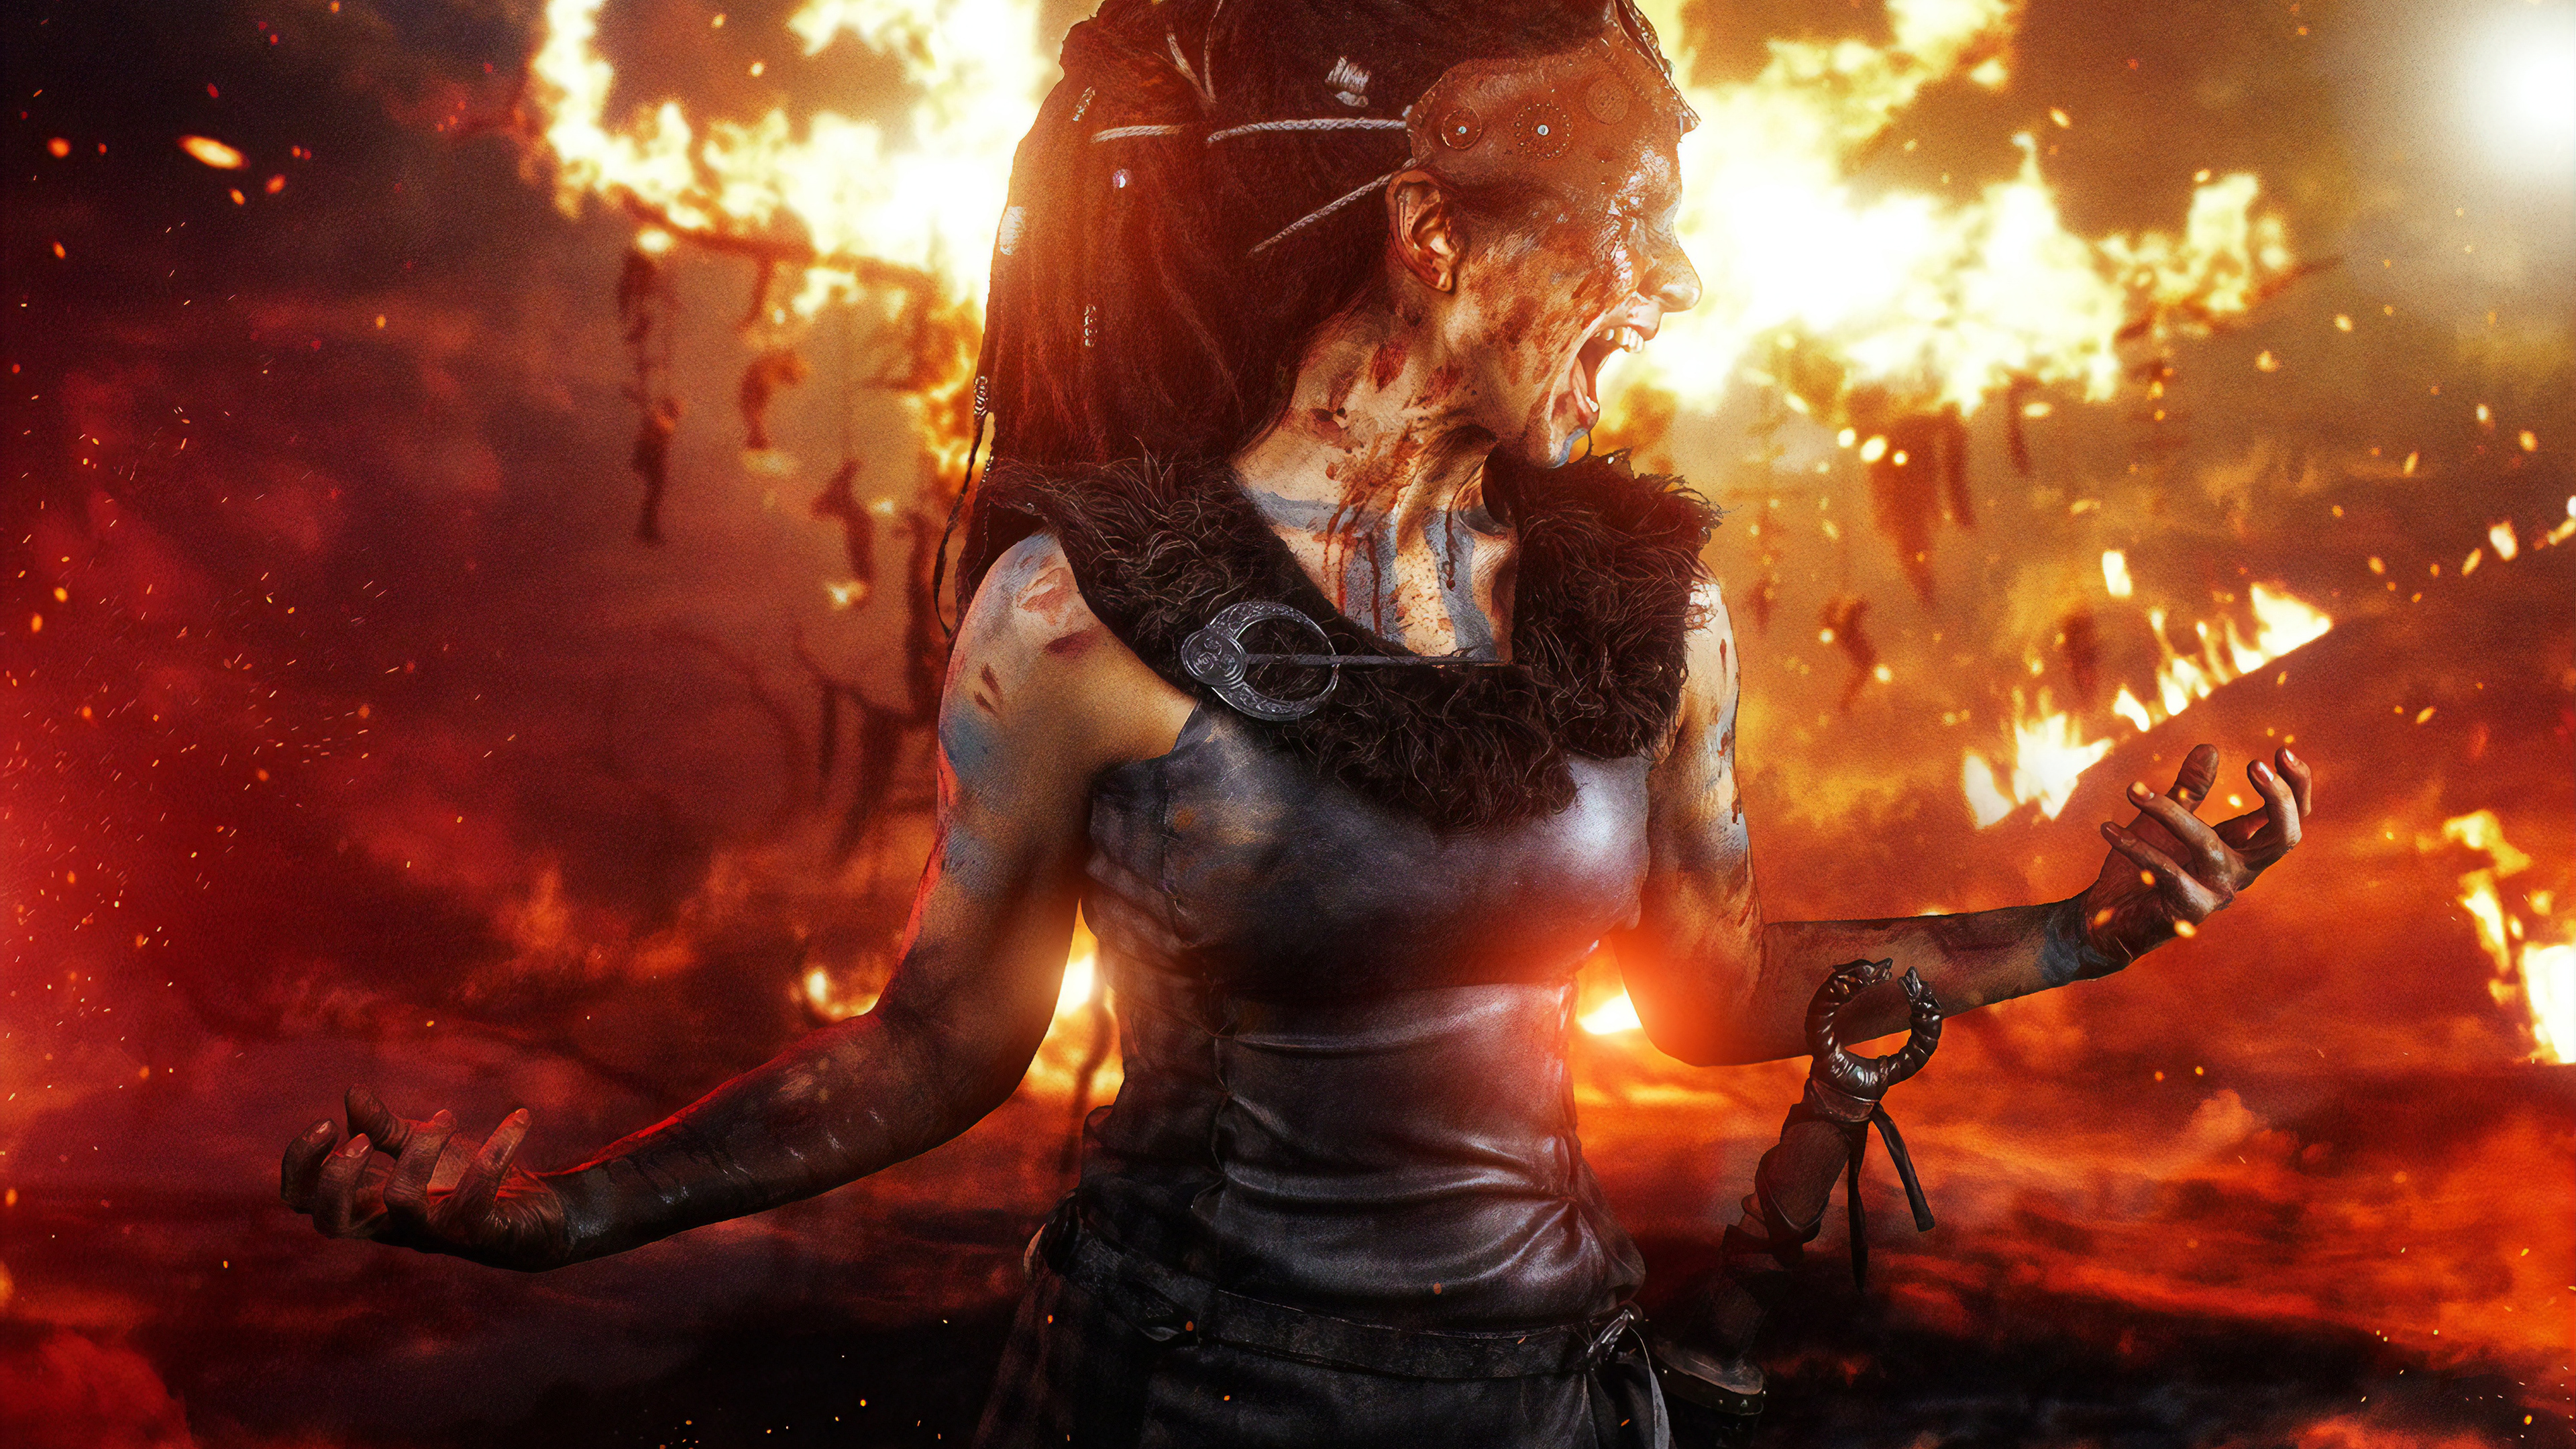 hellblade senuas sacrifice game 2019 1559798179 - Hellblade Senuas Sacrifice Game 2019 - hellblade senuas sacrifice wallpapers, hd-wallpapers, games wallpapers, cosplay wallpapers, 4k-wallpapers, 2019 games wallpapers